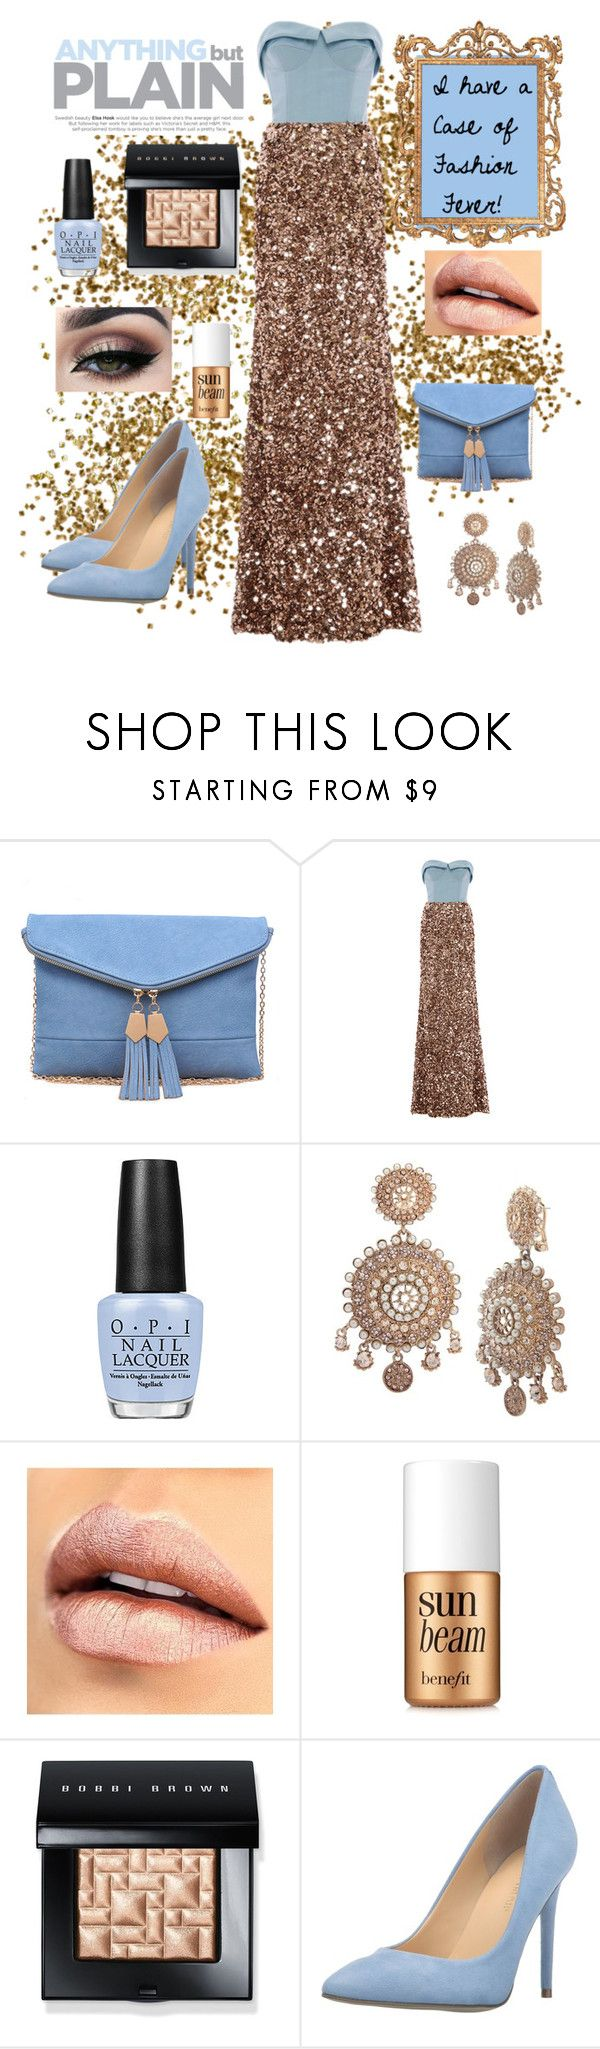 """""""I have a case of fashion fever"""" by lulalalala ❤ liked on Polyvore featuring Urban Expressions, Elizabeth Kennedy, OPI, Marchesa, Tiger Mist, Benefit, Bobbi Brown Cosmetics, Ivanka Trump, gold and fashionfever"""